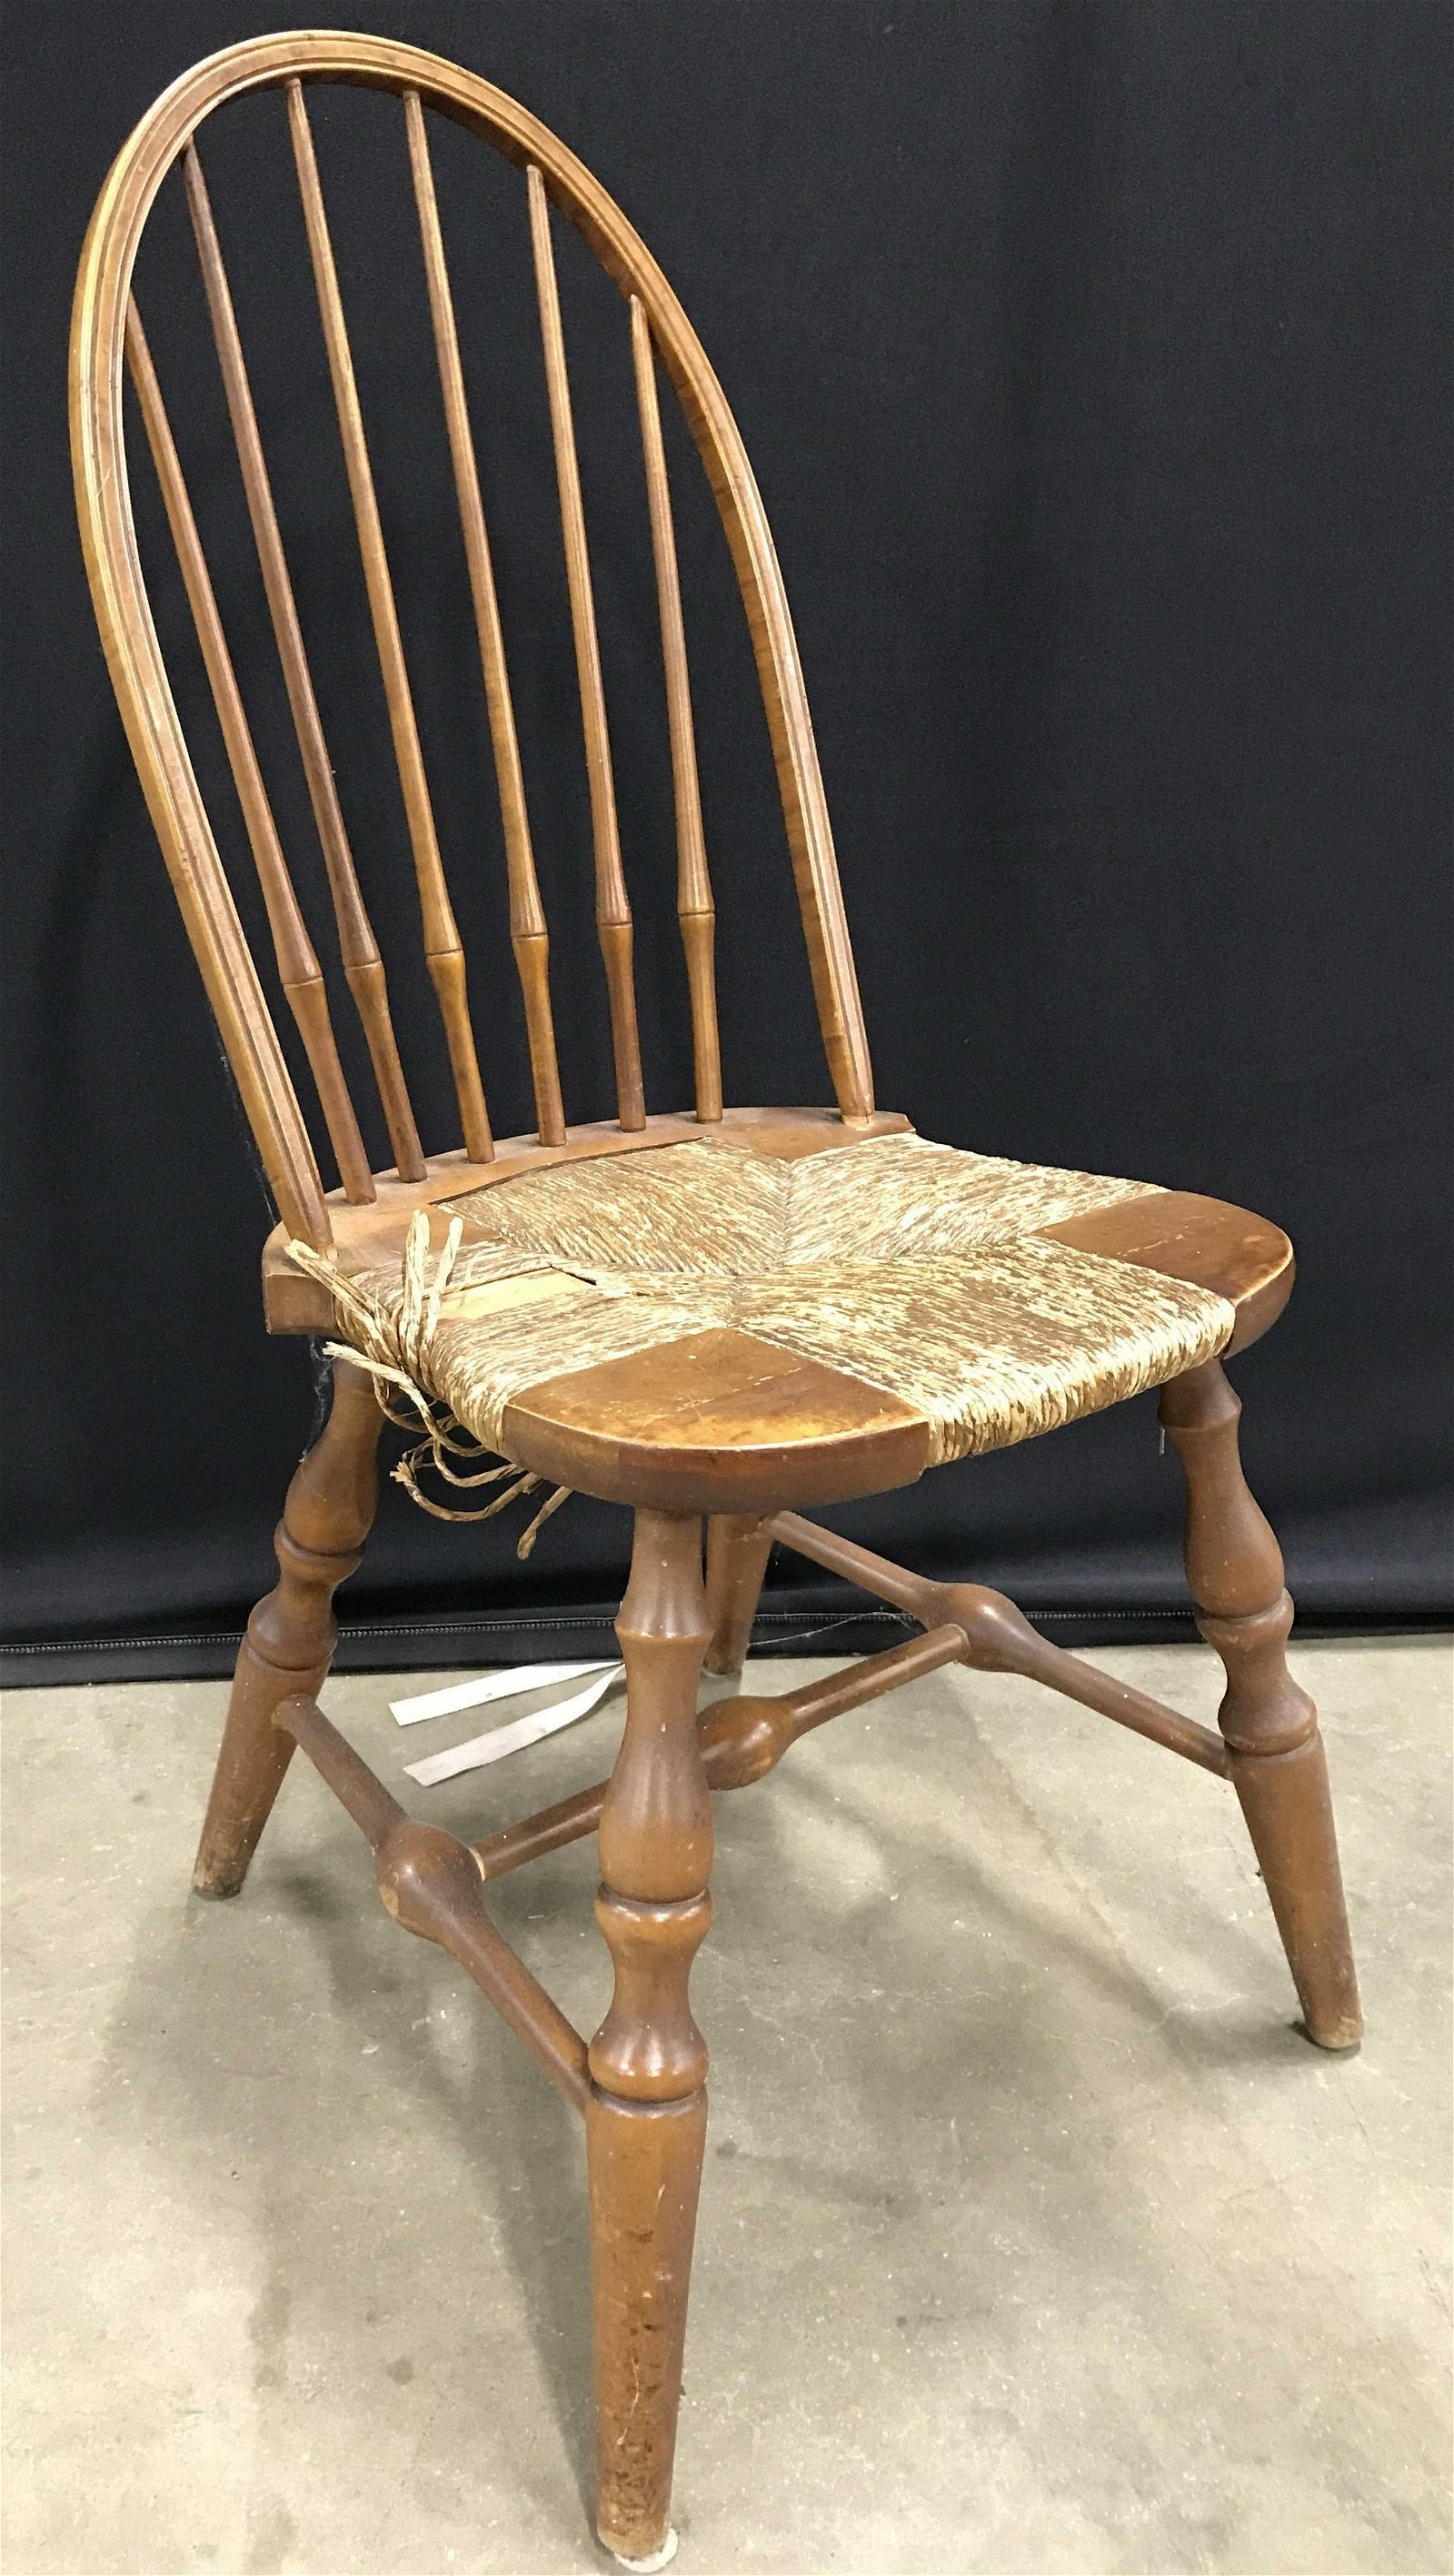 Antique Carved Wooden Spindle Back Chair